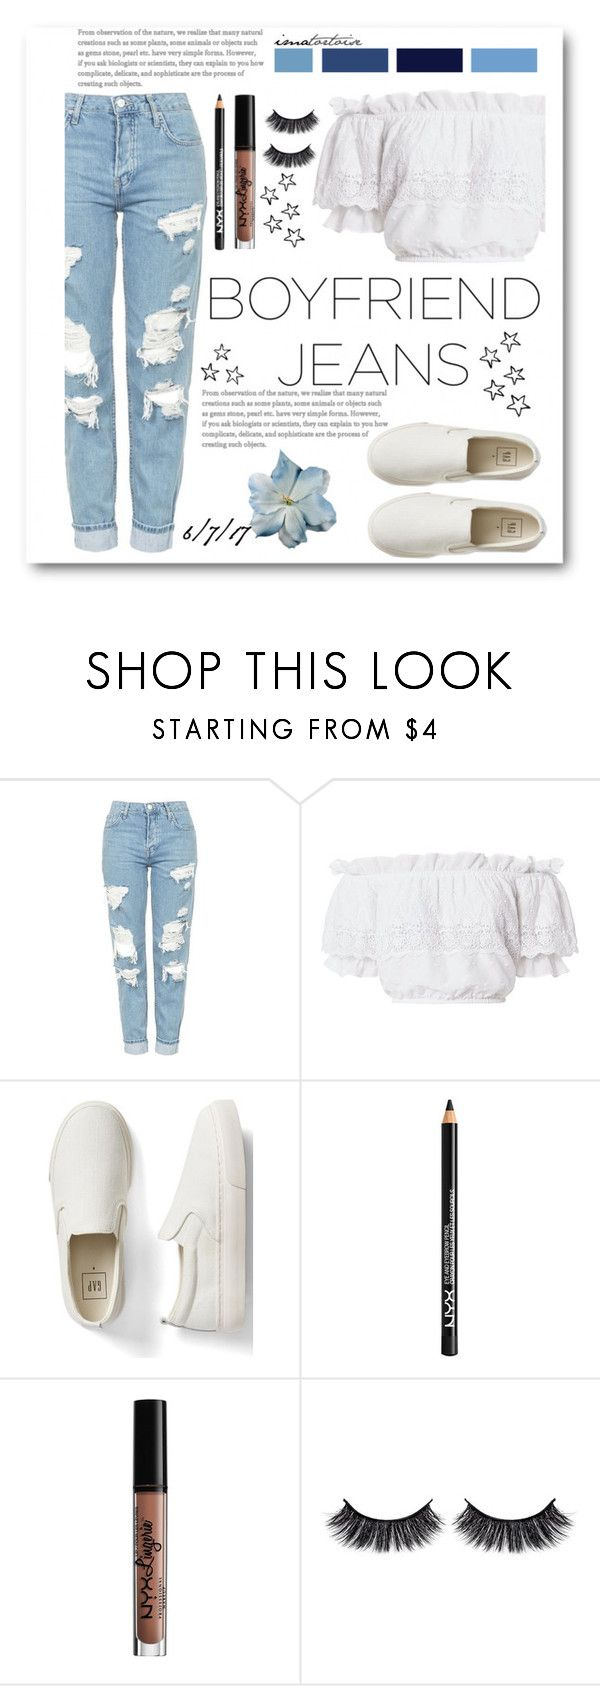 """ripped"" by iamatortoise ❤ liked on Polyvore featuring Topshop, LoveShackFancy, Gap, NYX and Battington"